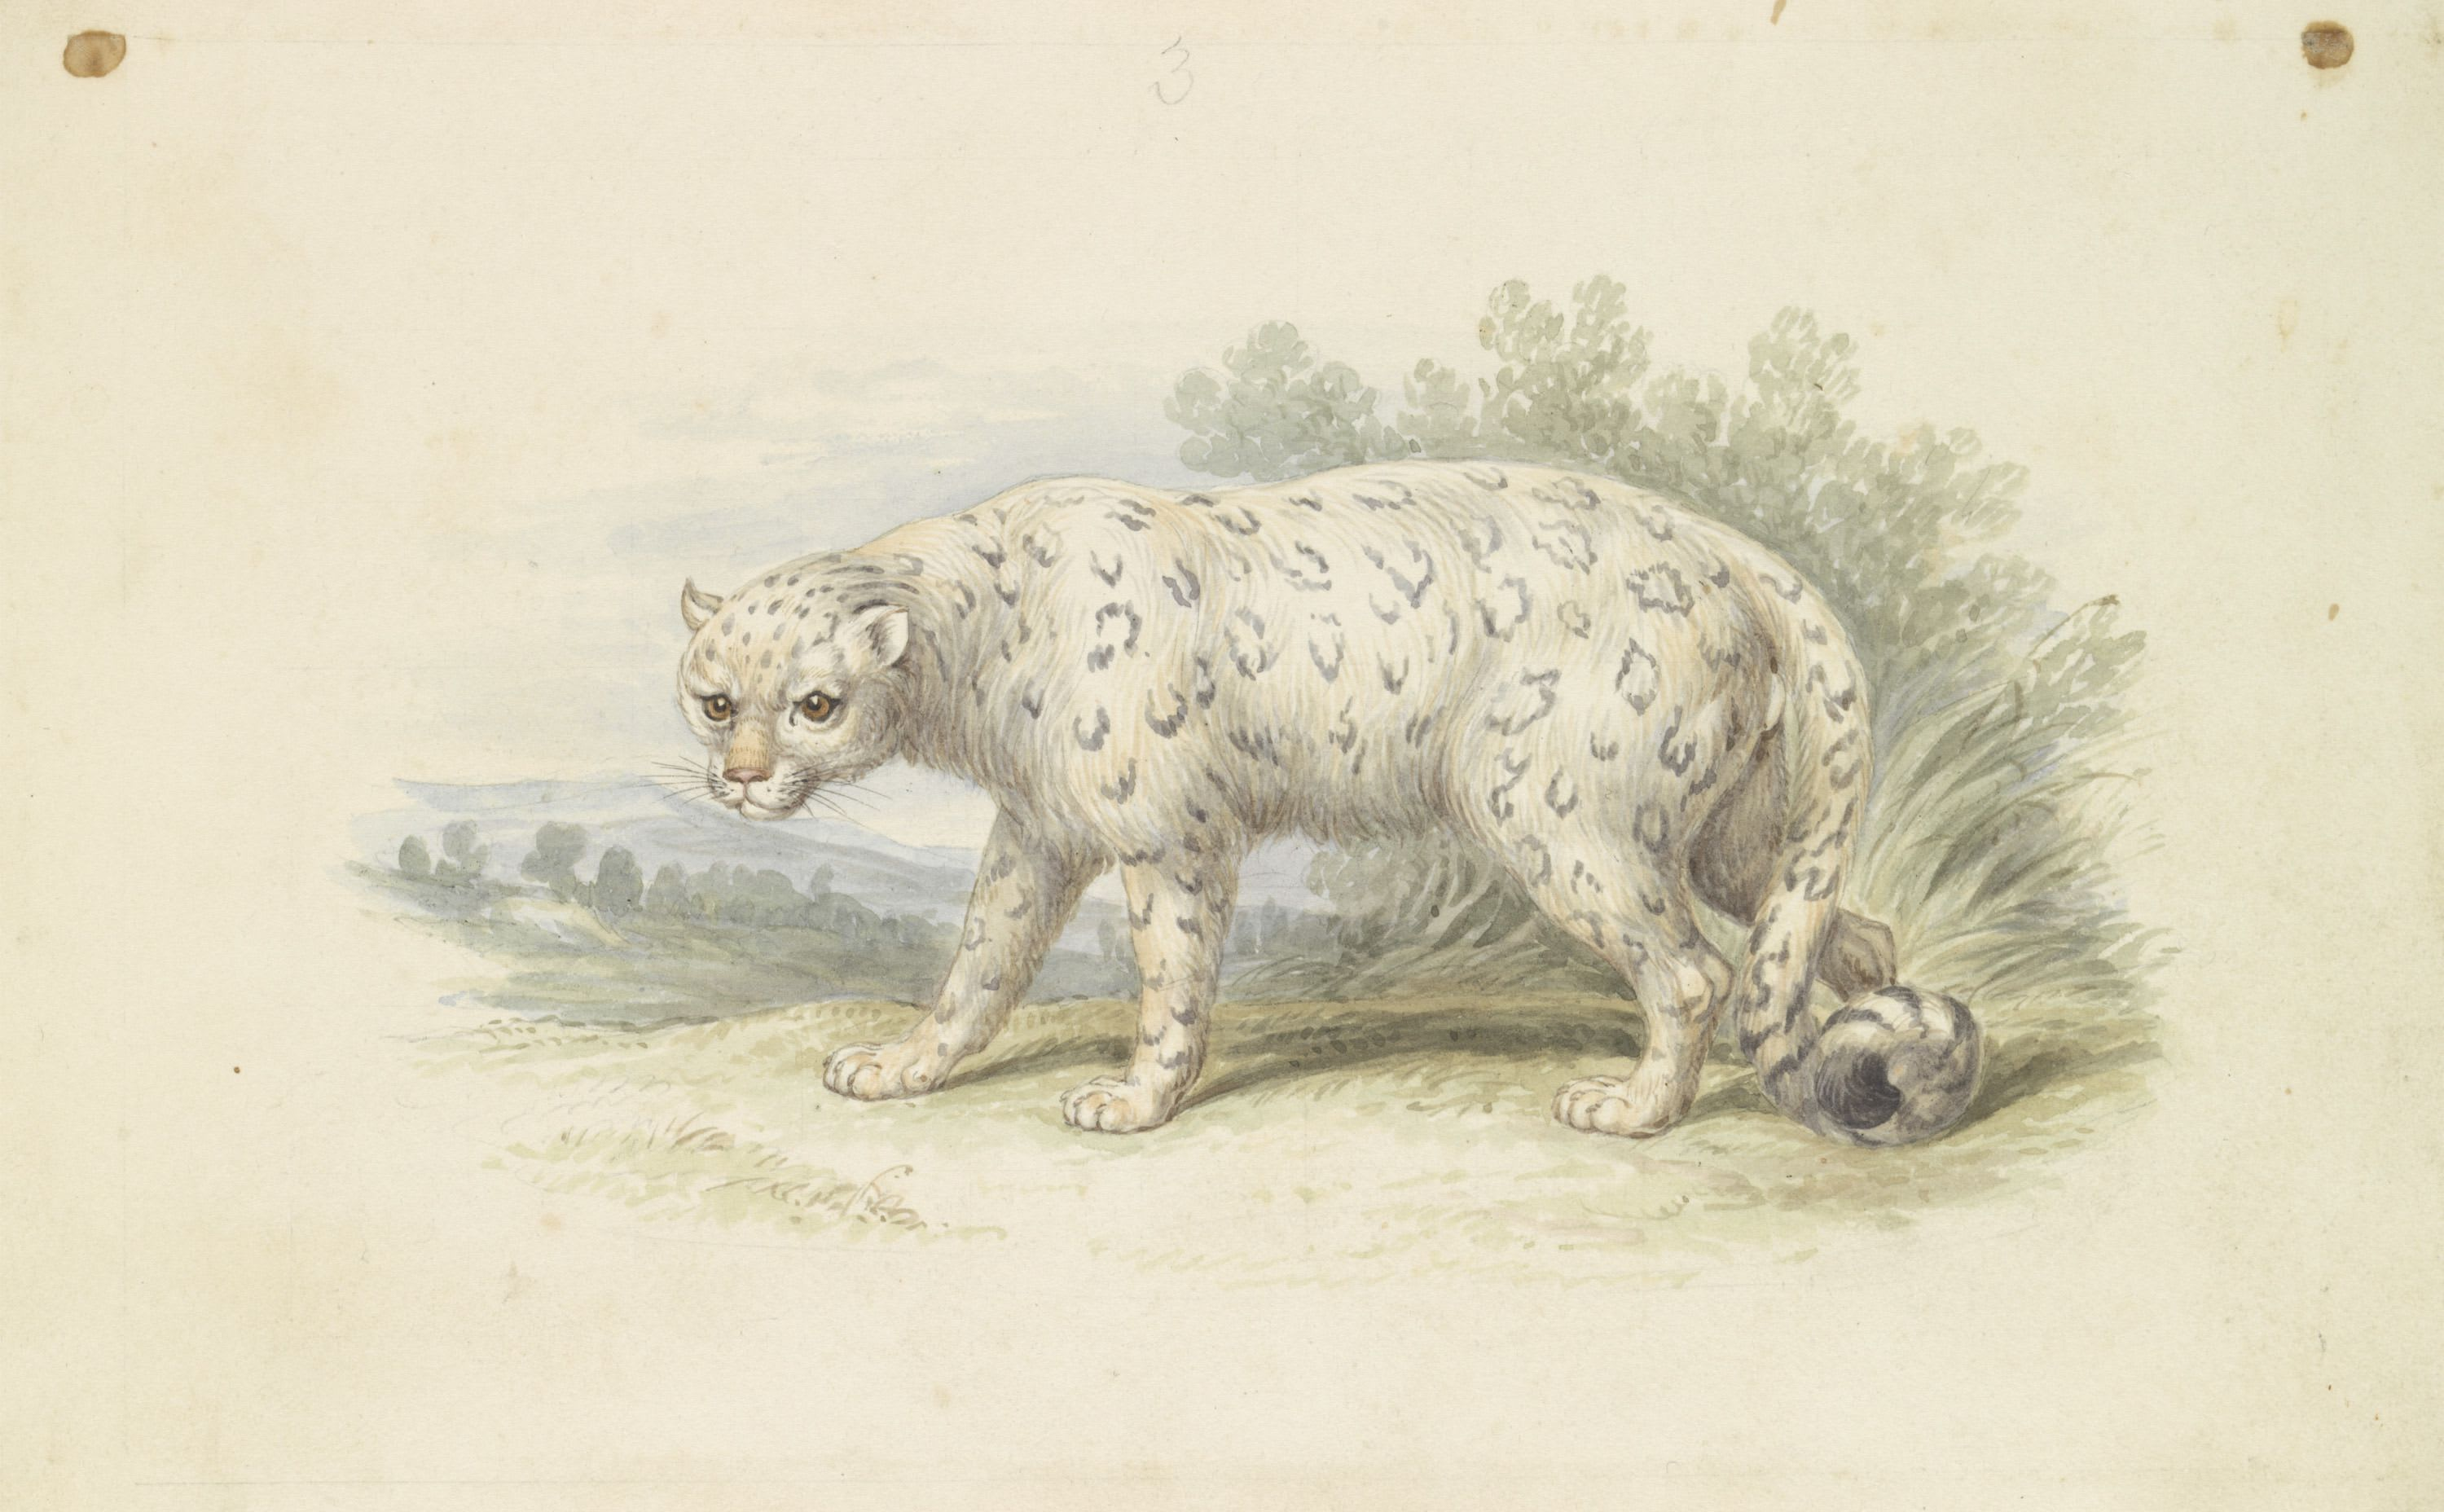 Watercolour painting of a snow leopard with foliage and a hilly landscape behind.